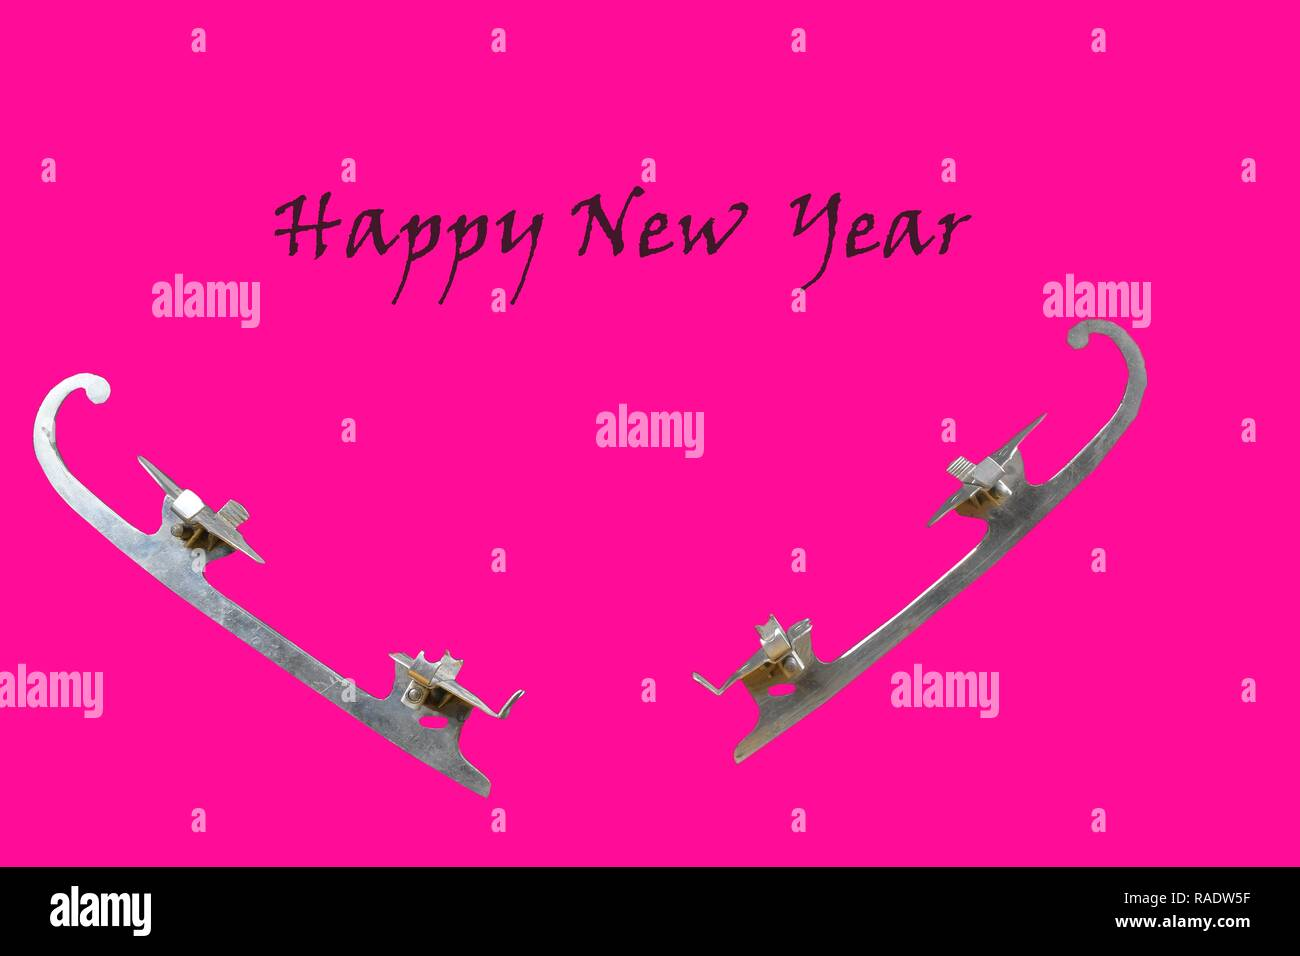 Vintage ice-skate on pink background. Text - Happy New Year. Copy space - Stock Image